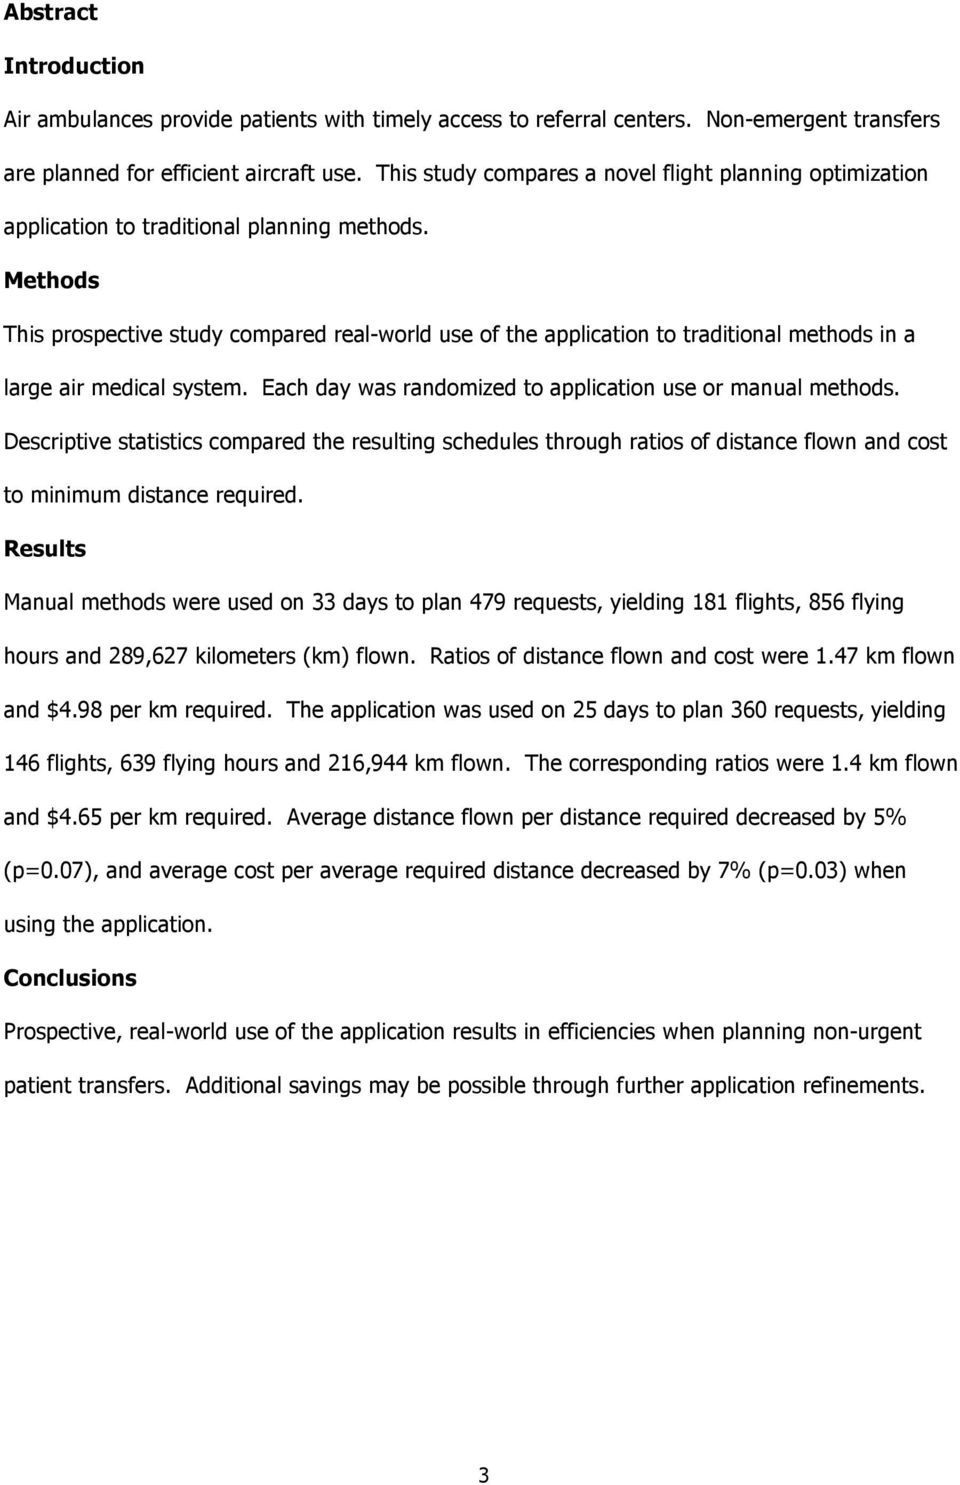 Methods This prospective study compared real-world use of the application to traditional methods in a large air medical system. Each day was randomized to application use or manual methods.